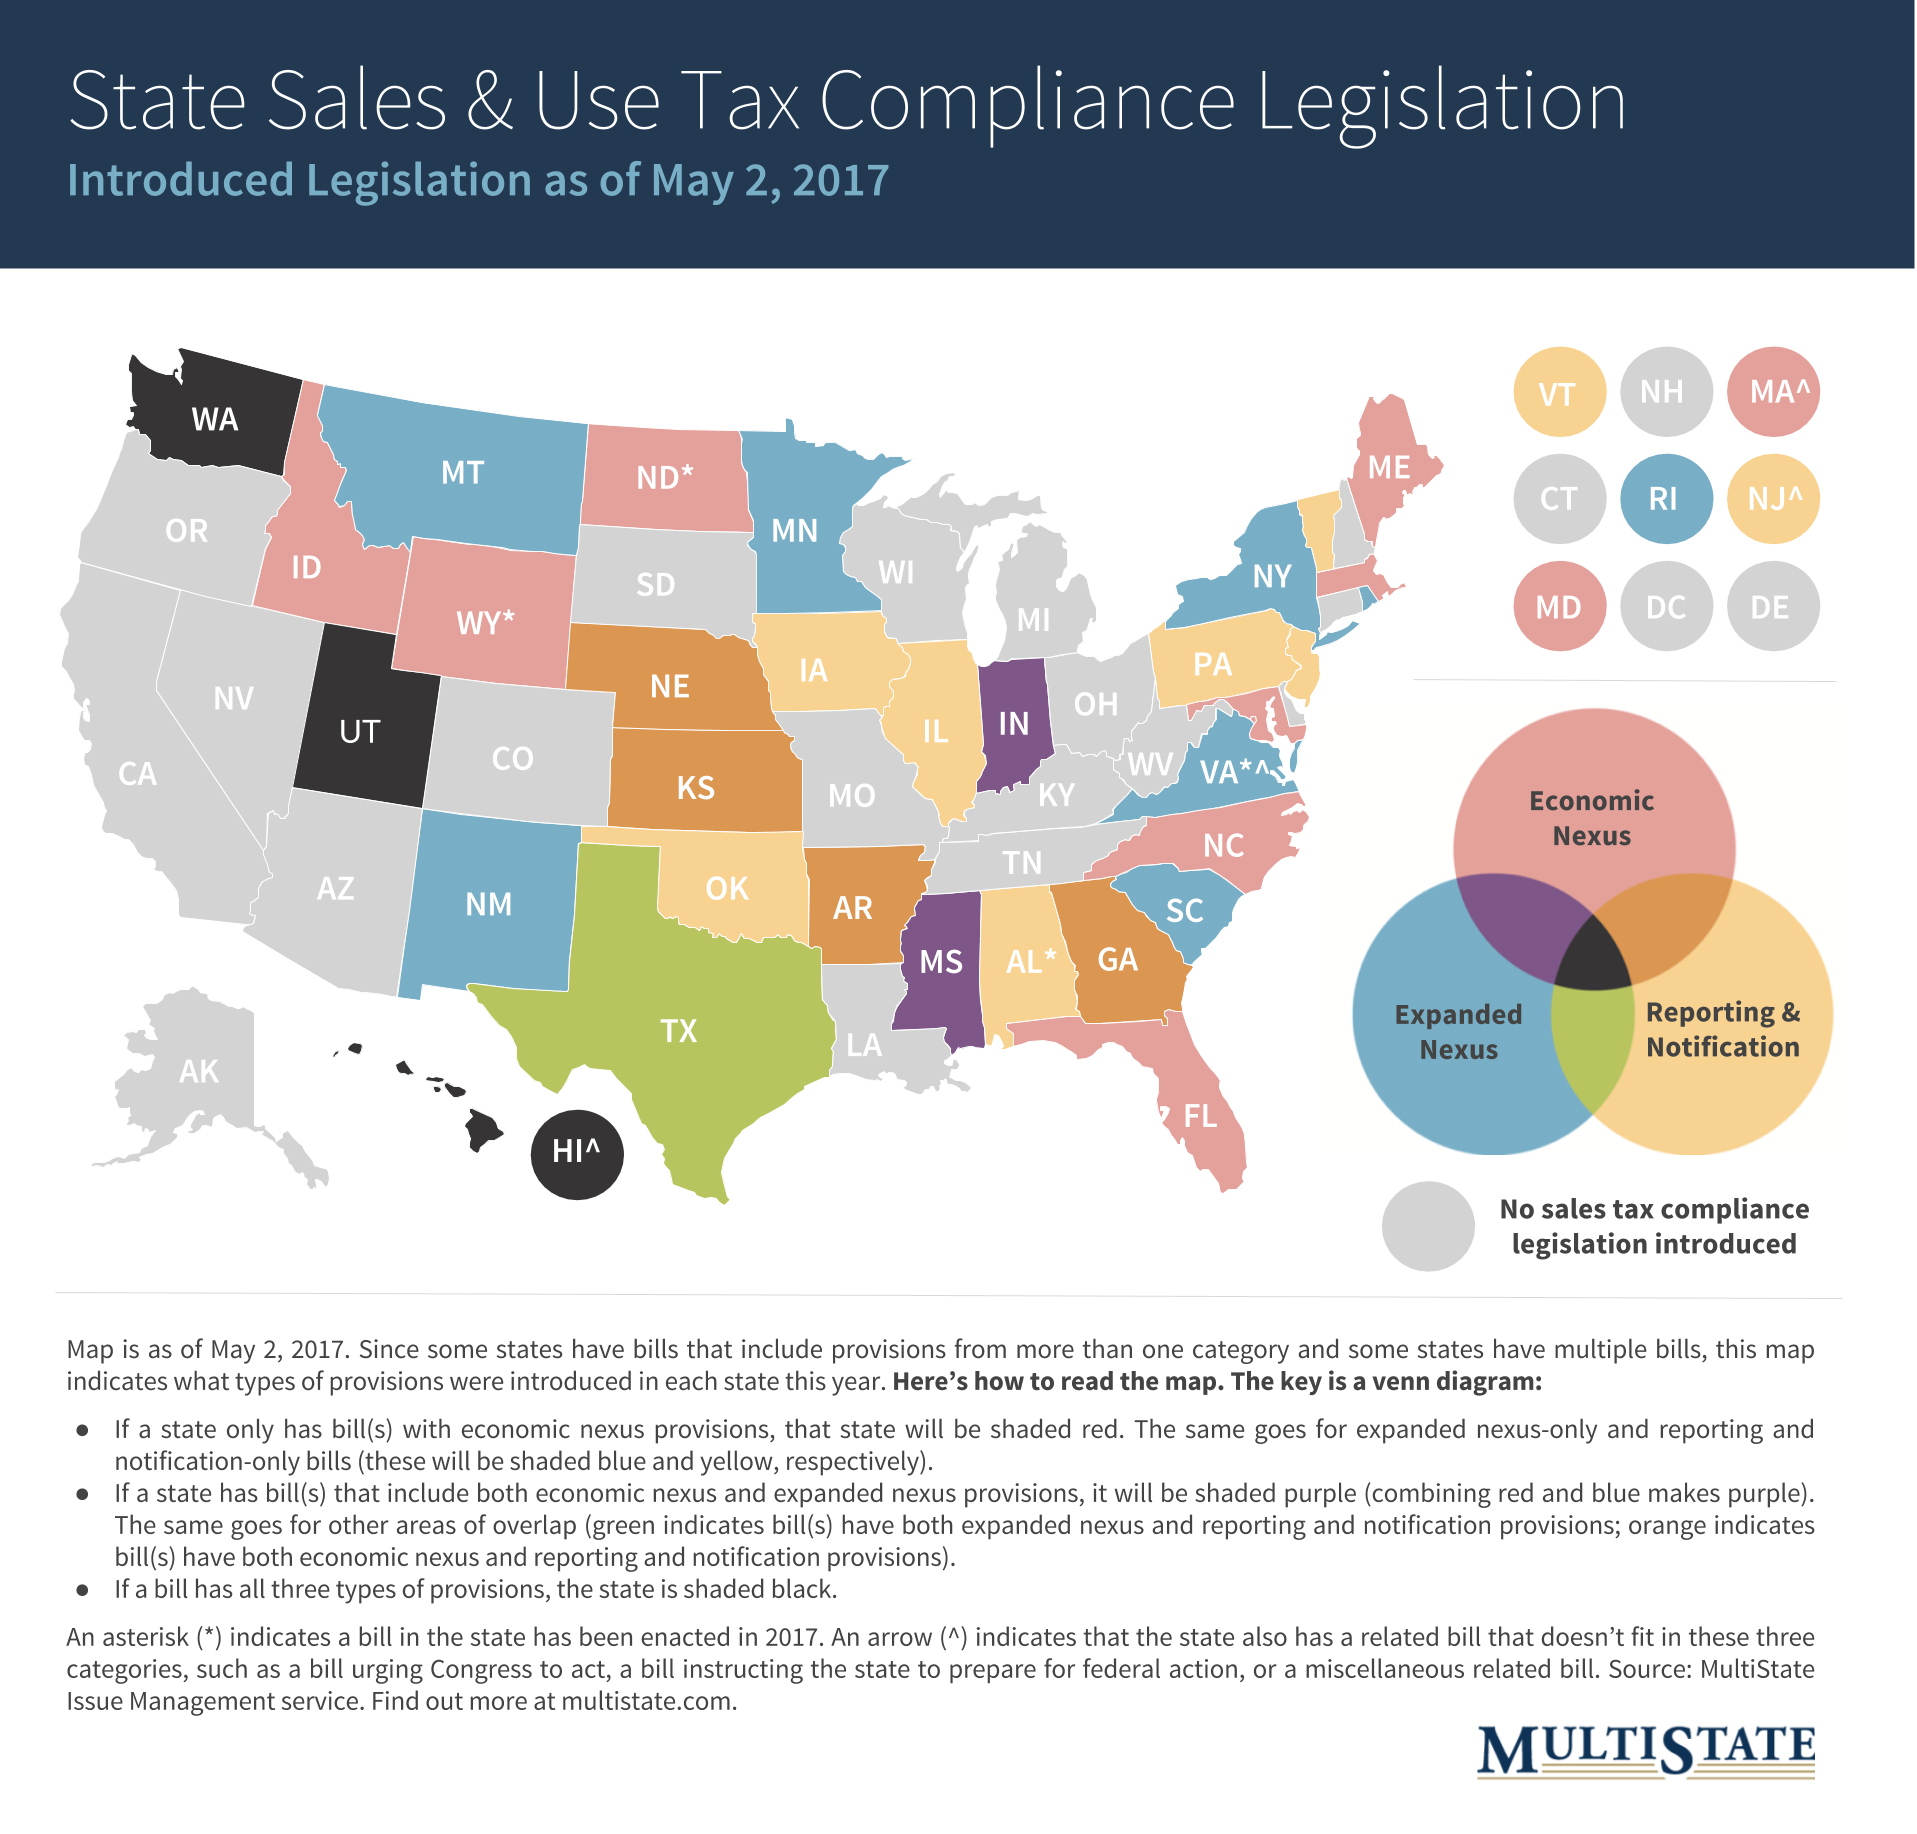 State Sales and Use Tax Compliance Legislation